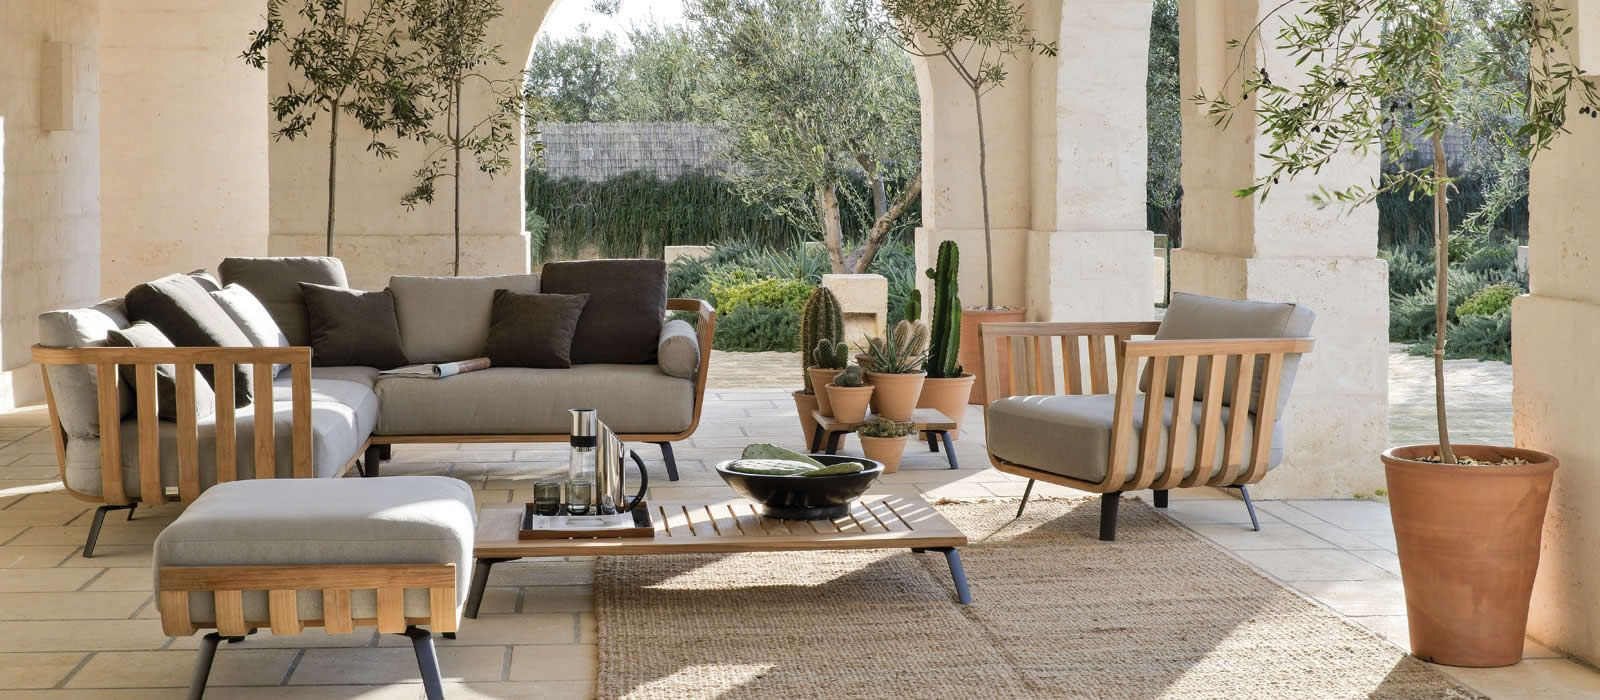 welcome arredi giardino unopiu outdoor furniture from italy sofa armchairs chairs